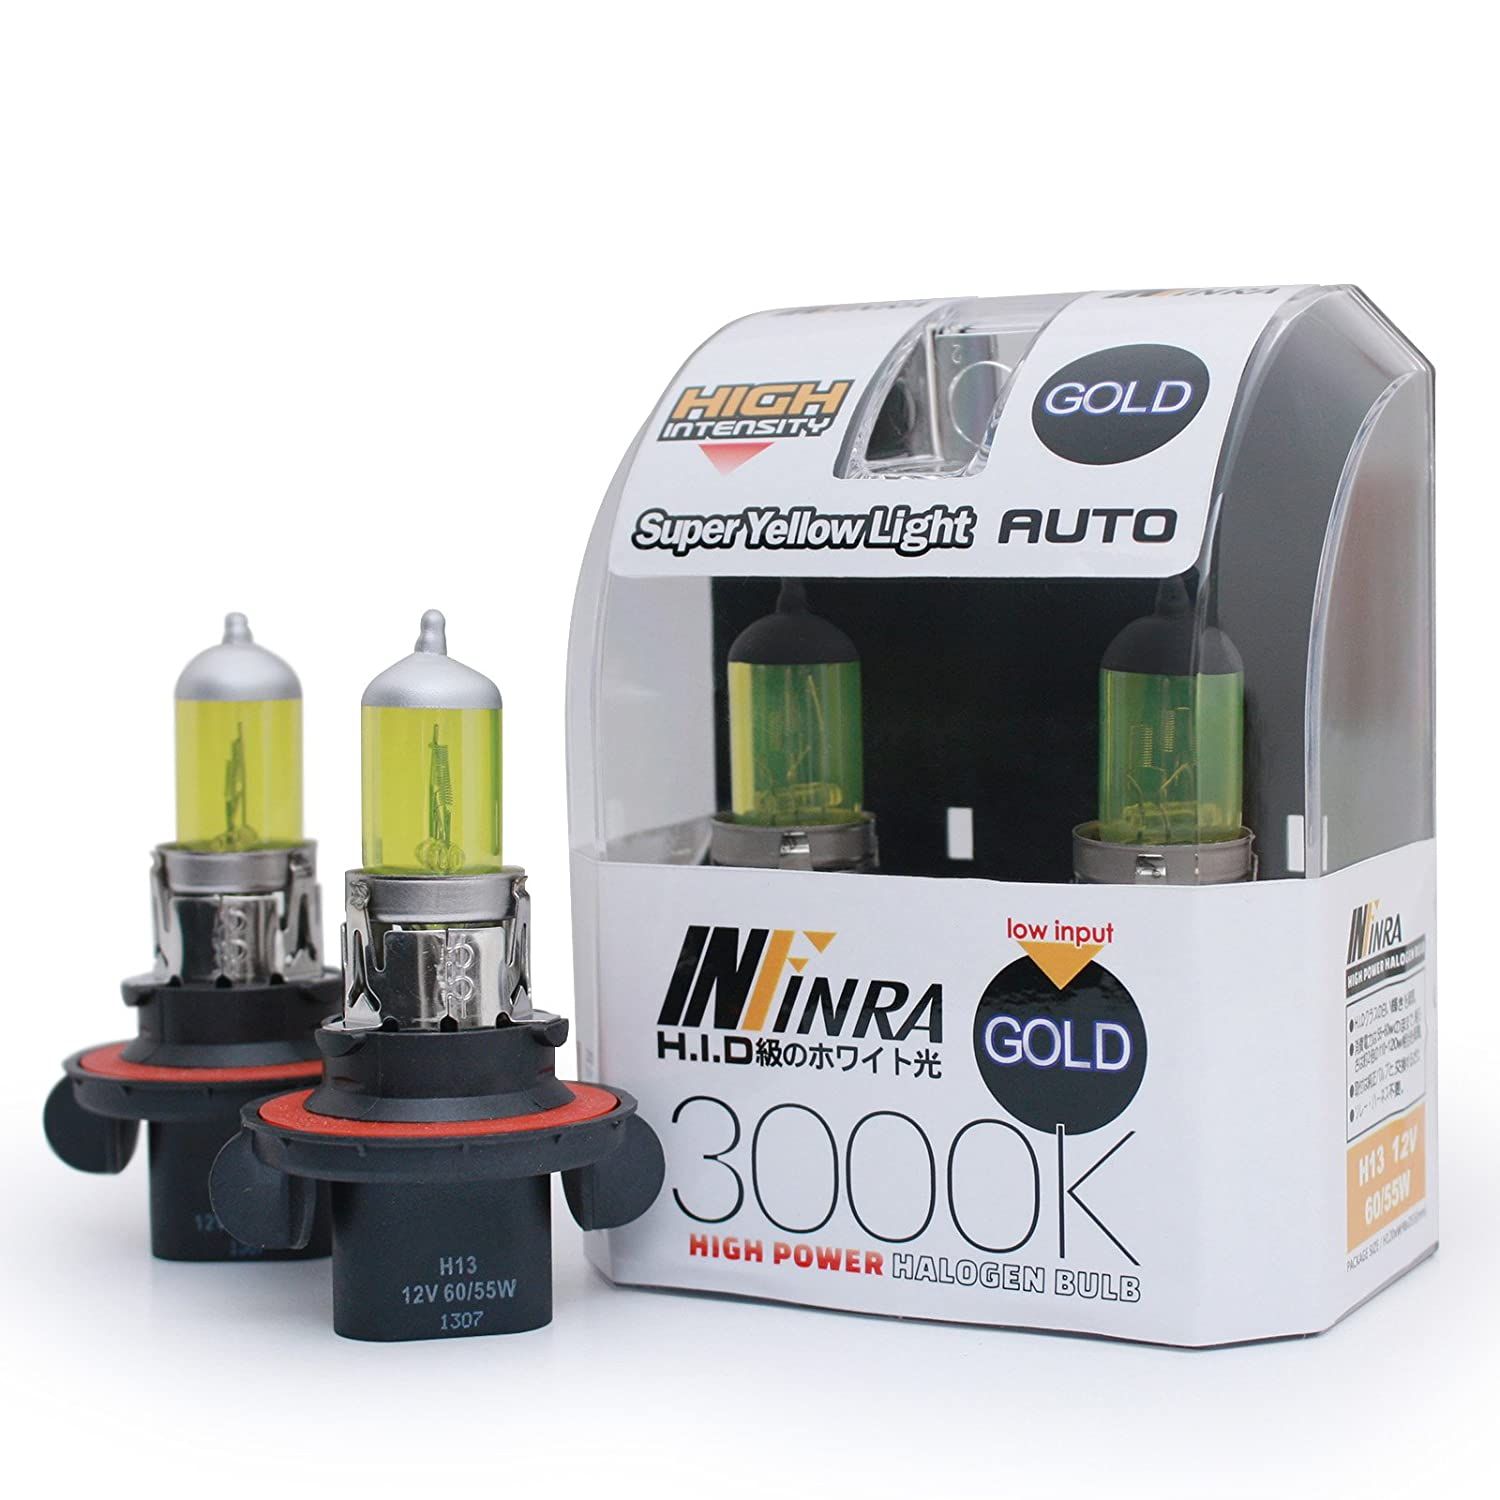 Infinra H13 (9008) 60/55W 3000K Super Yellow Xenon Halogen Headlight Bulbs (Pack of 2)